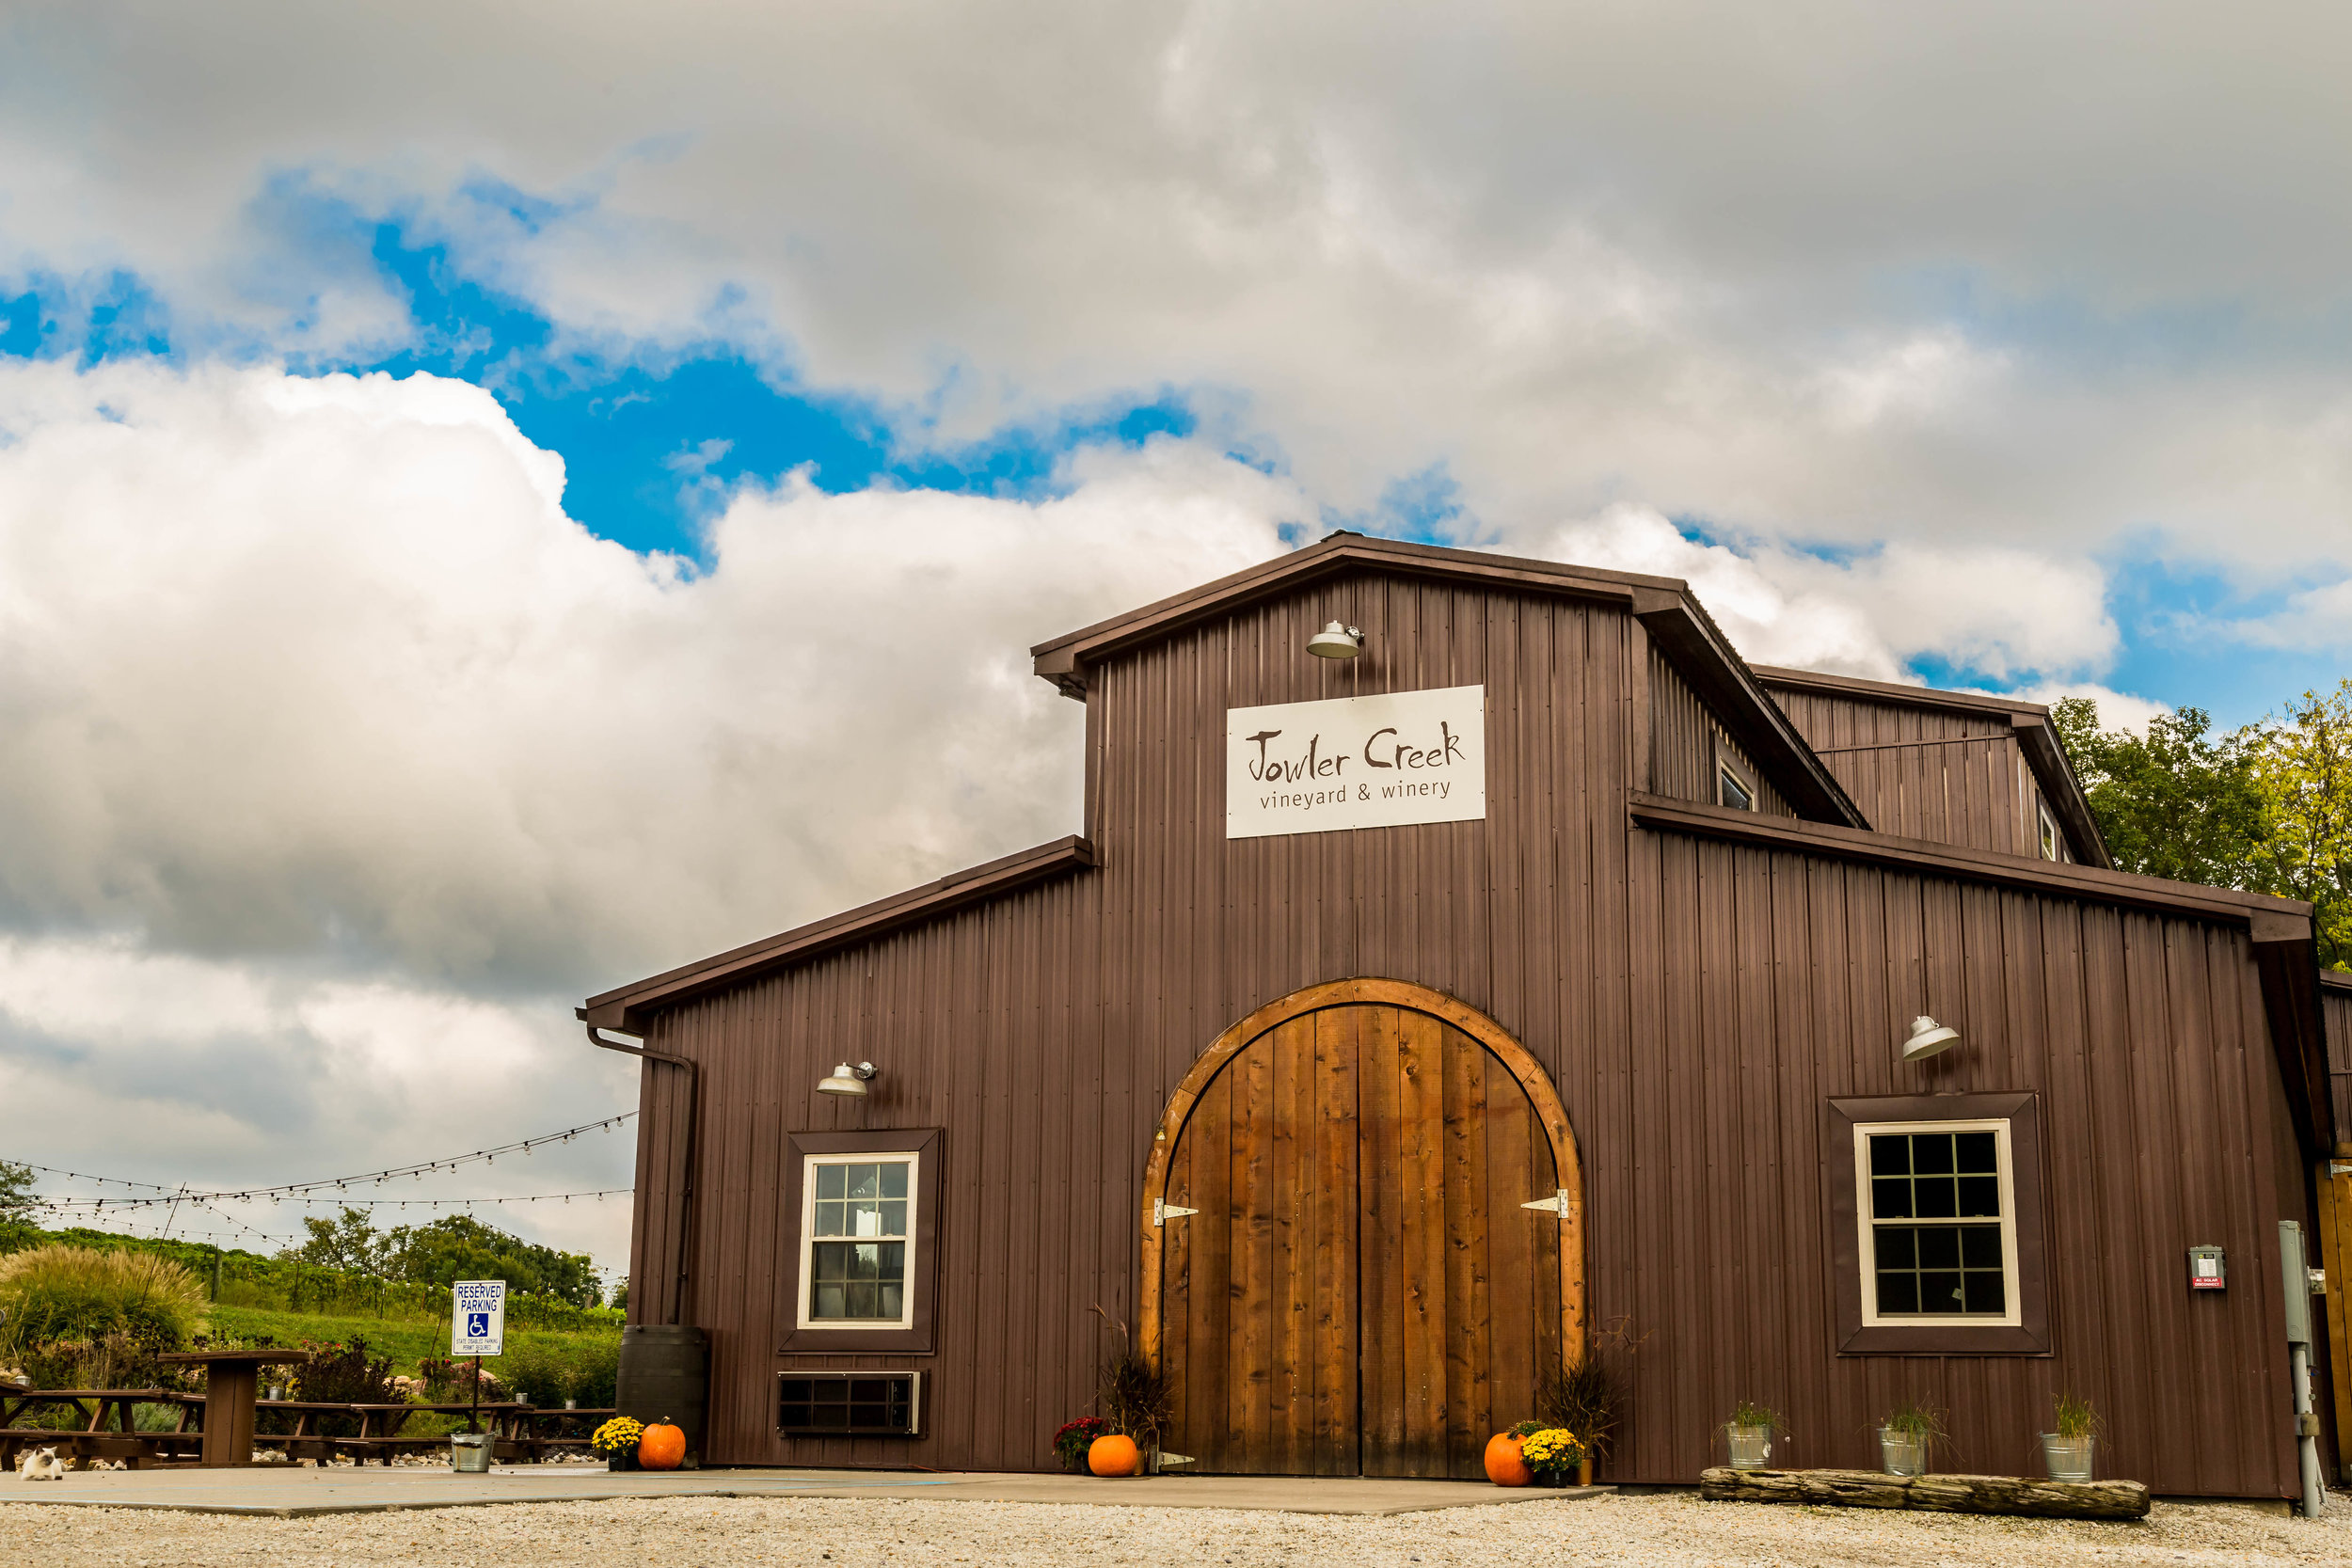 Jowler Creek Winery serves the best wines in Missouri in its winetasting room located near me in Weston Mo, St. Joseph Mo and Kansas City Mo. The winery offers fun wine events and winetasting events and uses sustainable practices to make their award-winning wines.